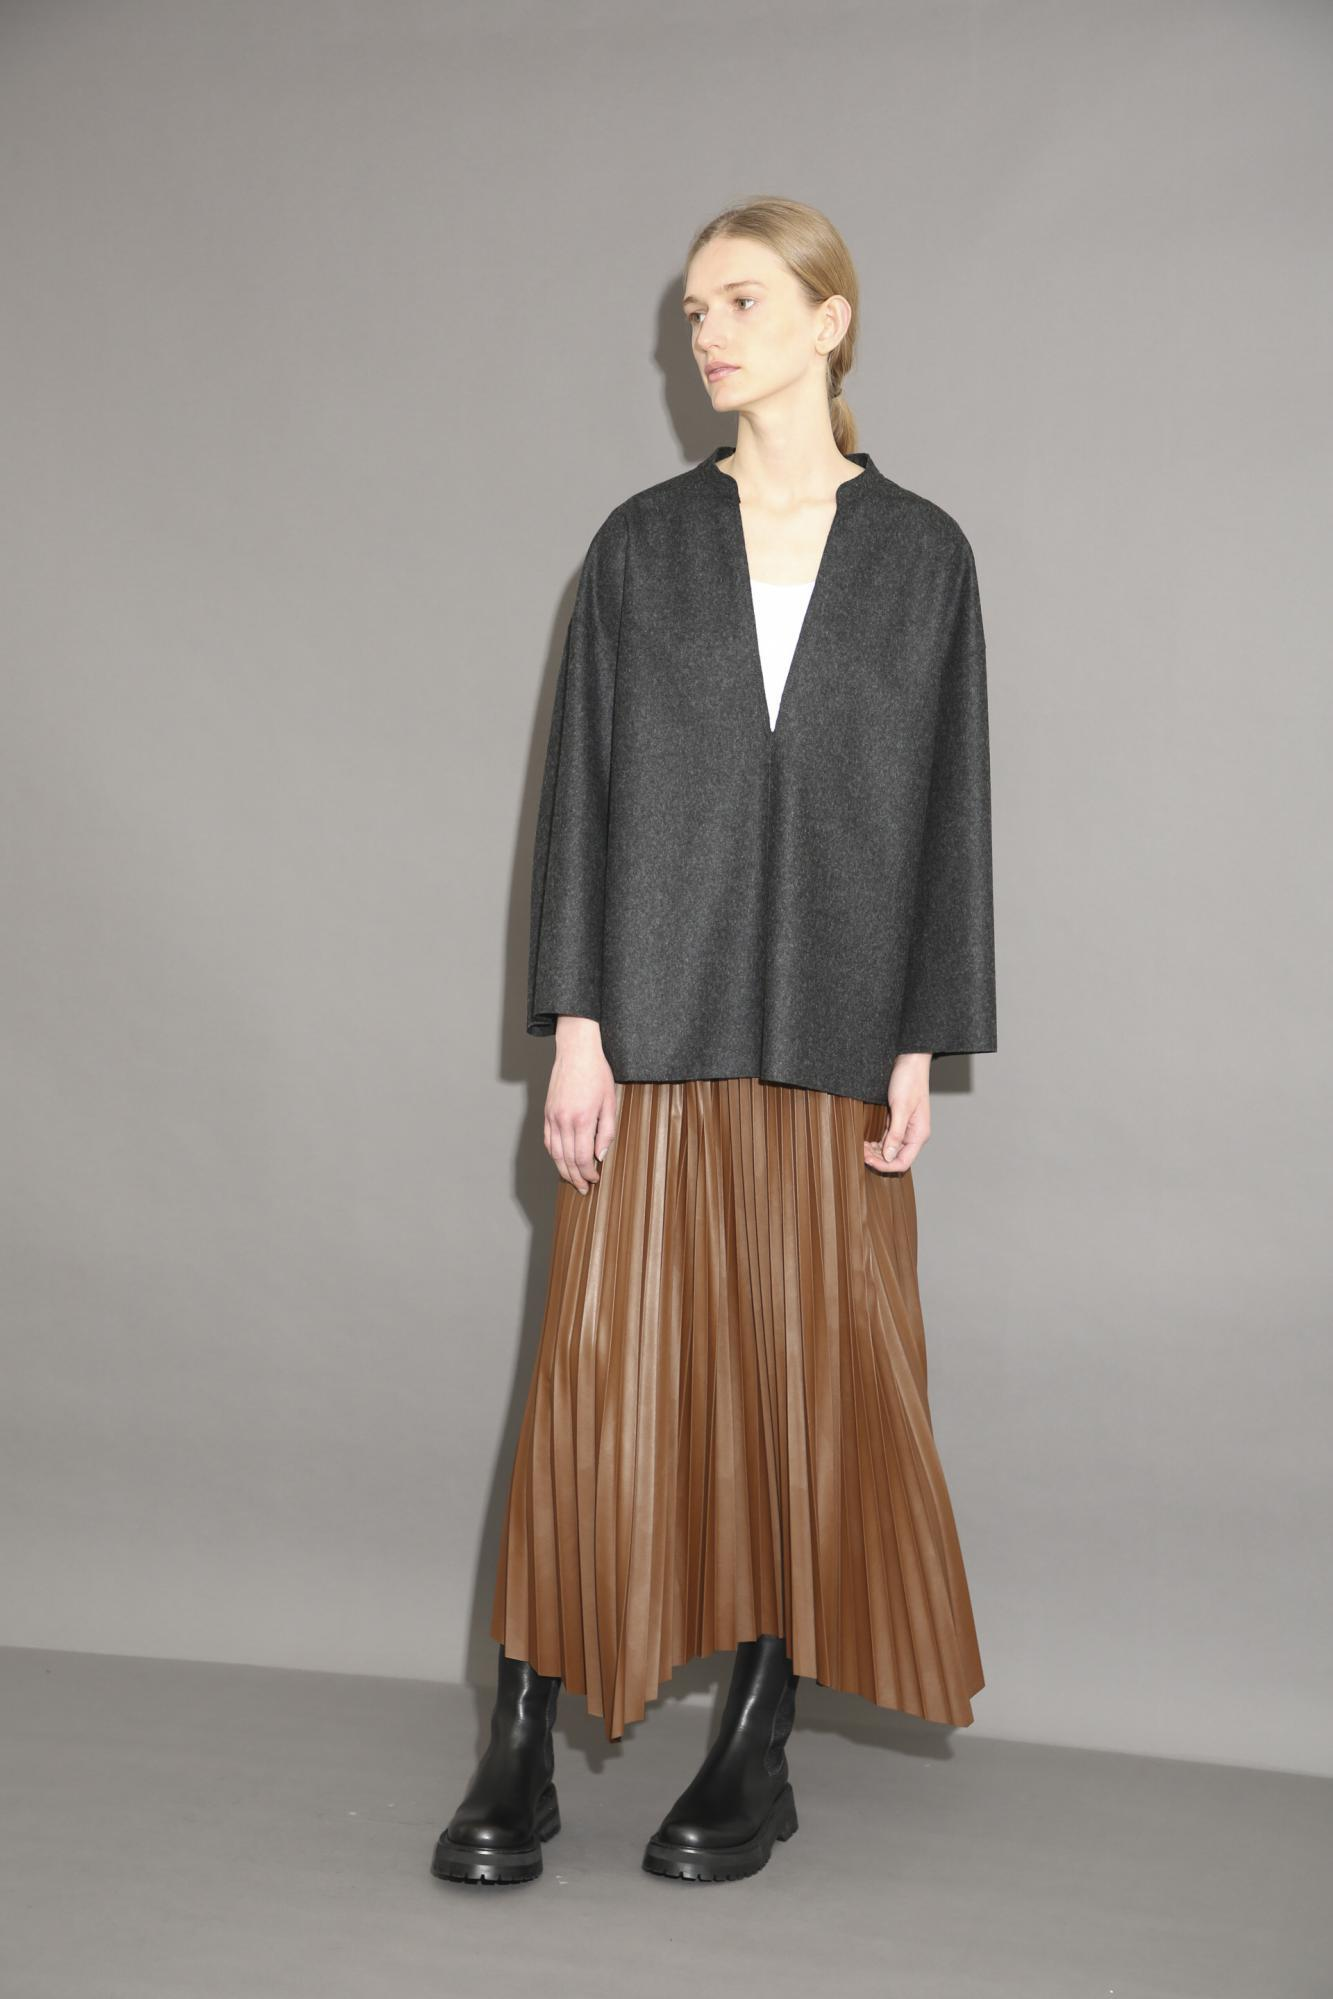 SYTHETIC LEATHER SKIRT